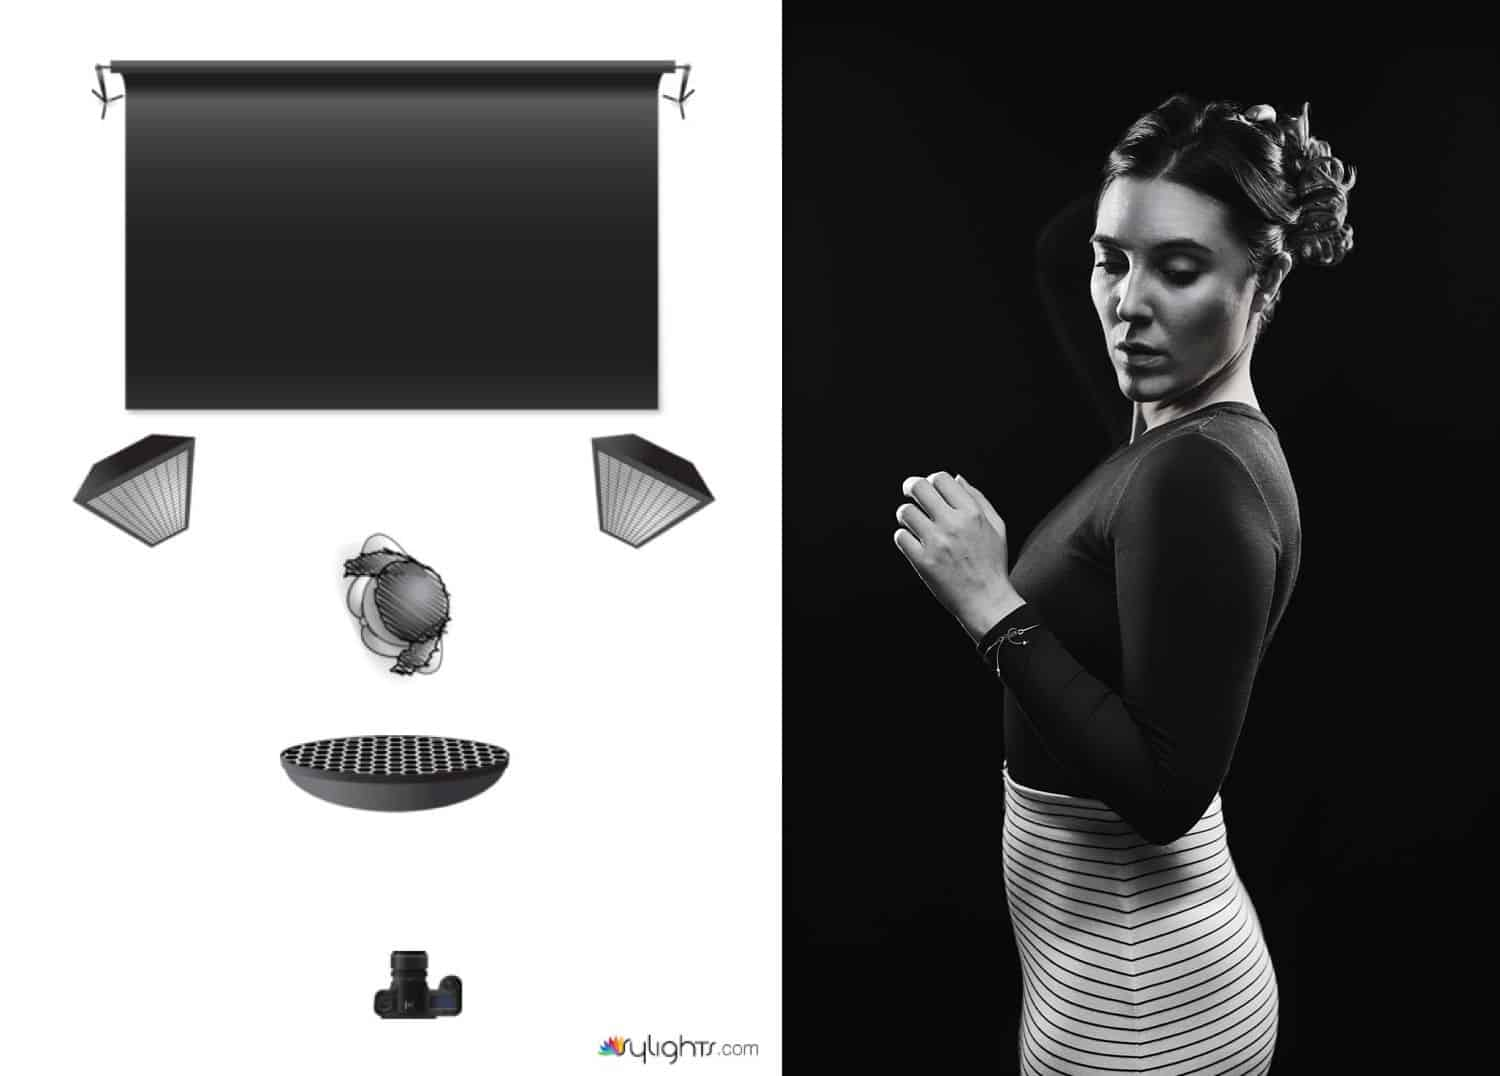 A diagram shows how the photographer created this high-contrast black and white studio portrait using rim lighting.